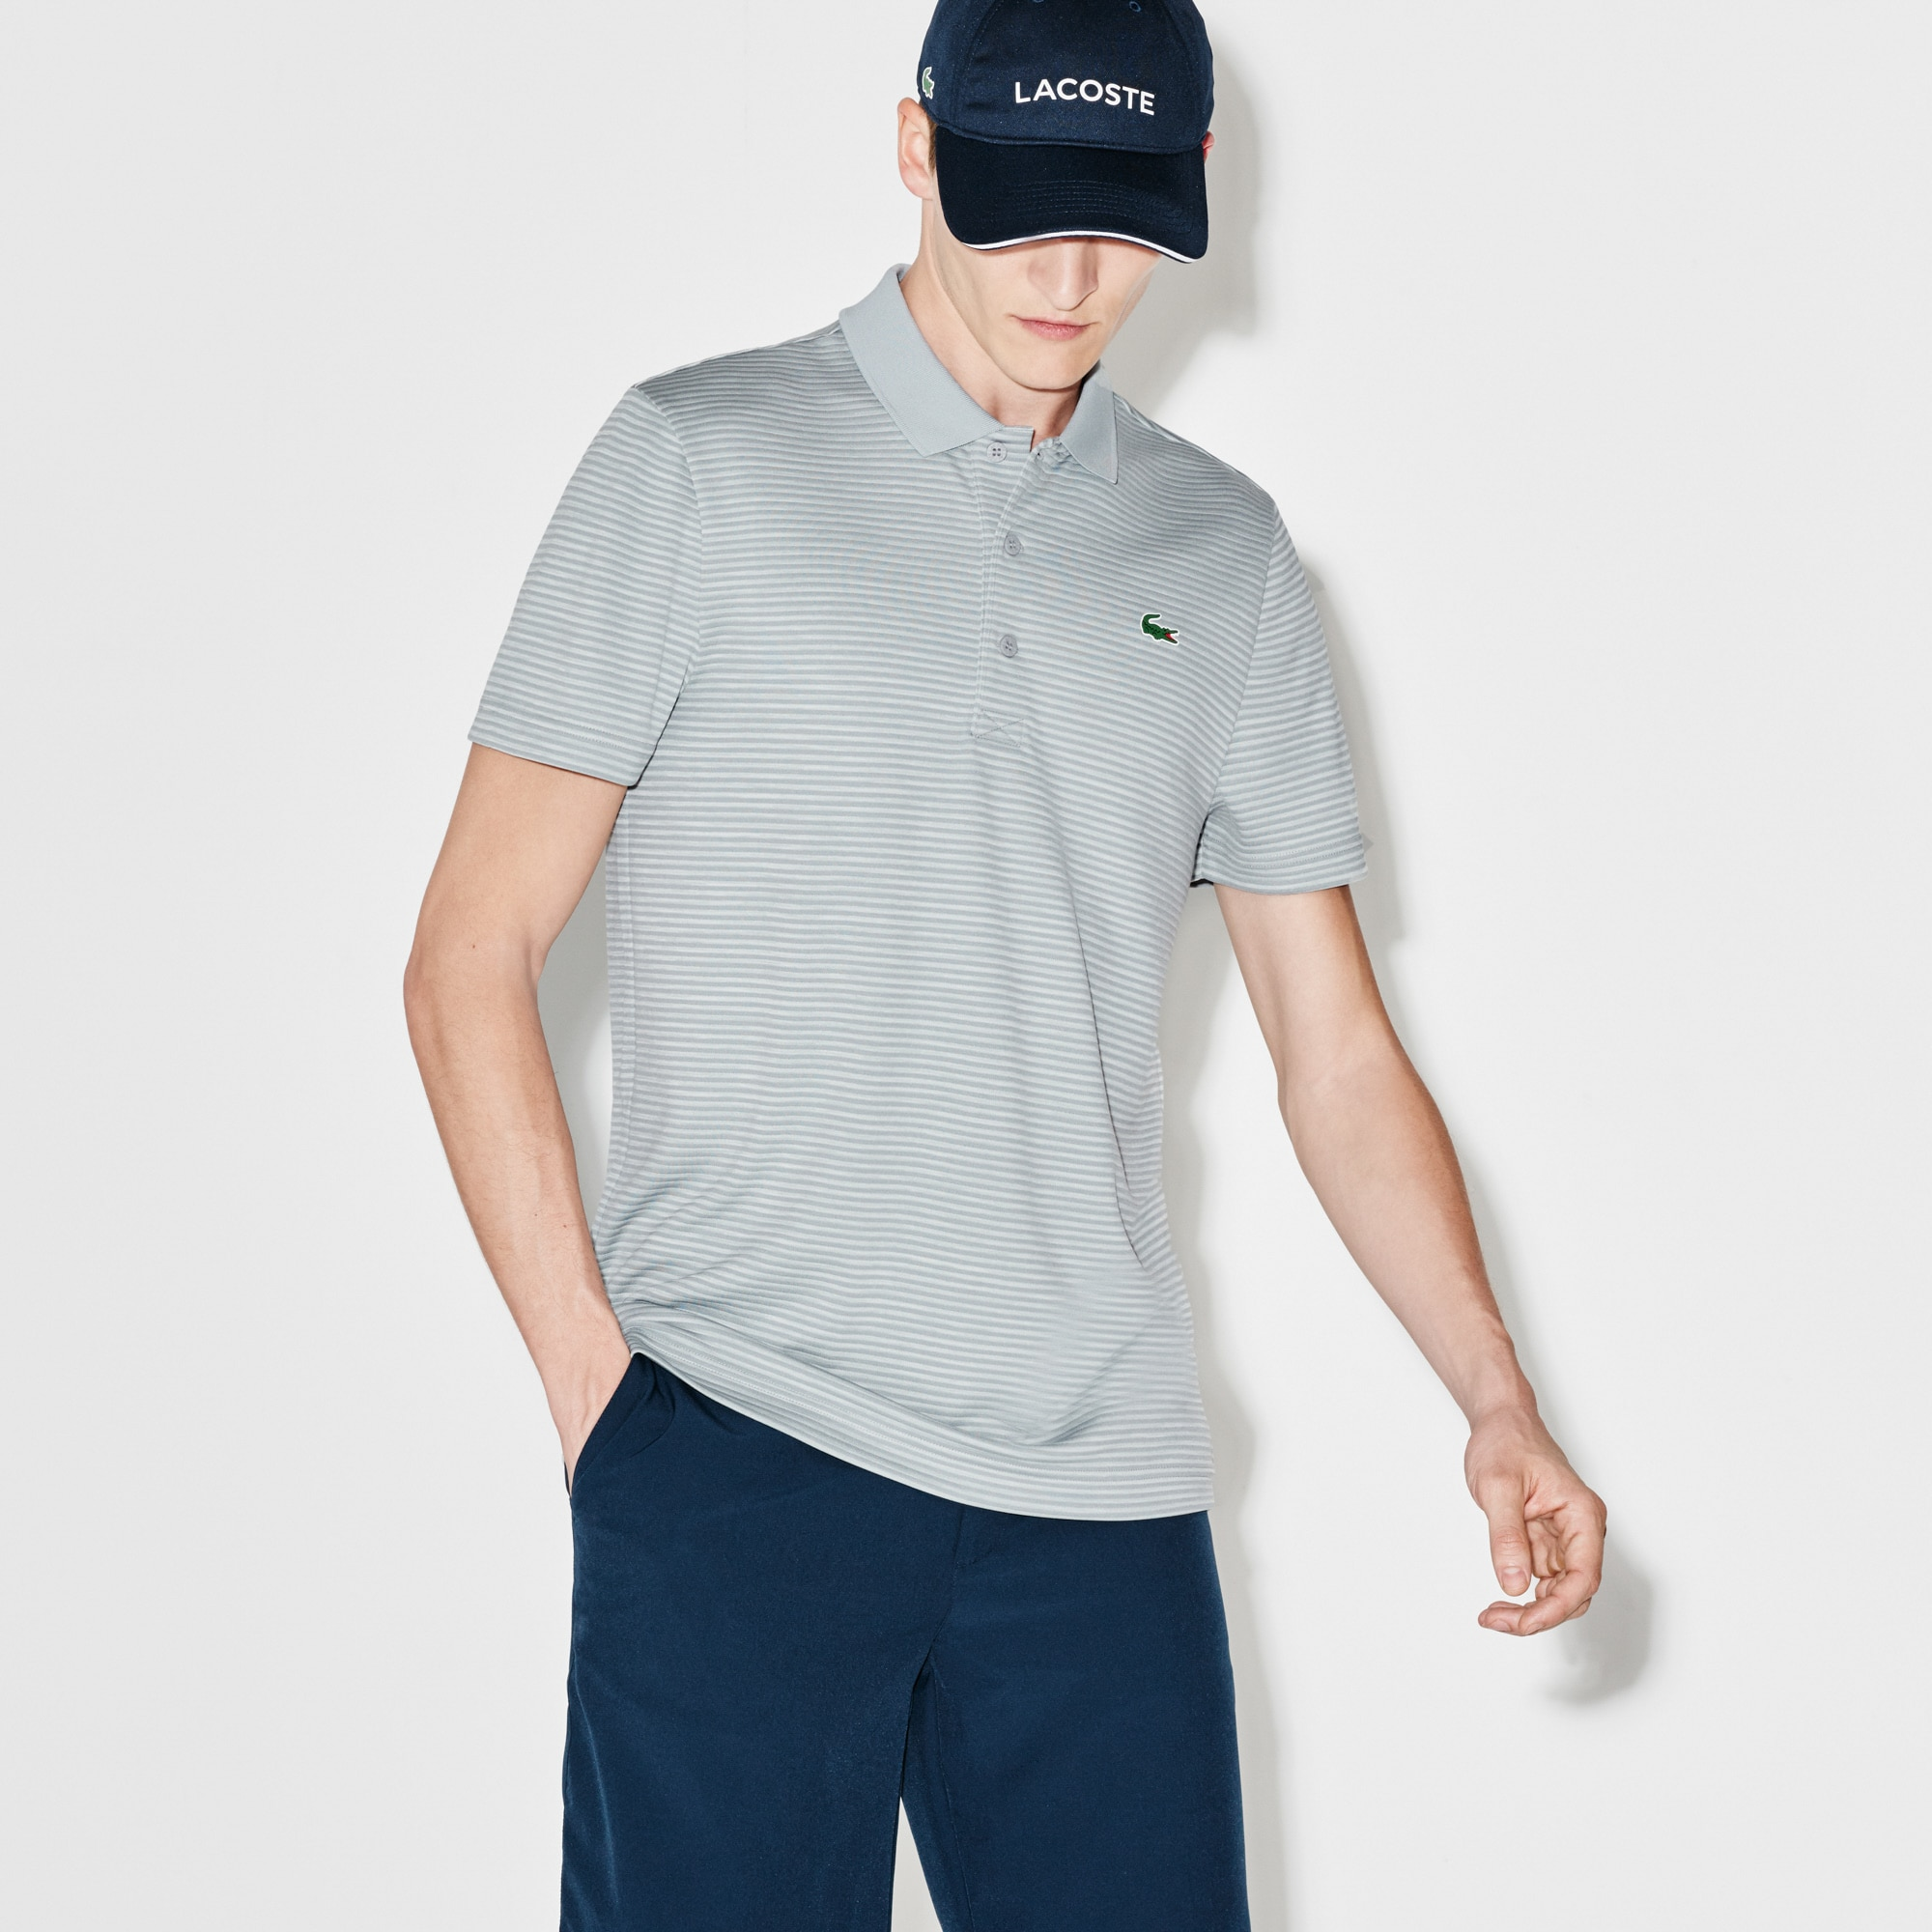 Men's Lacoste SPORT Golf Striped Tech Jersey Polo